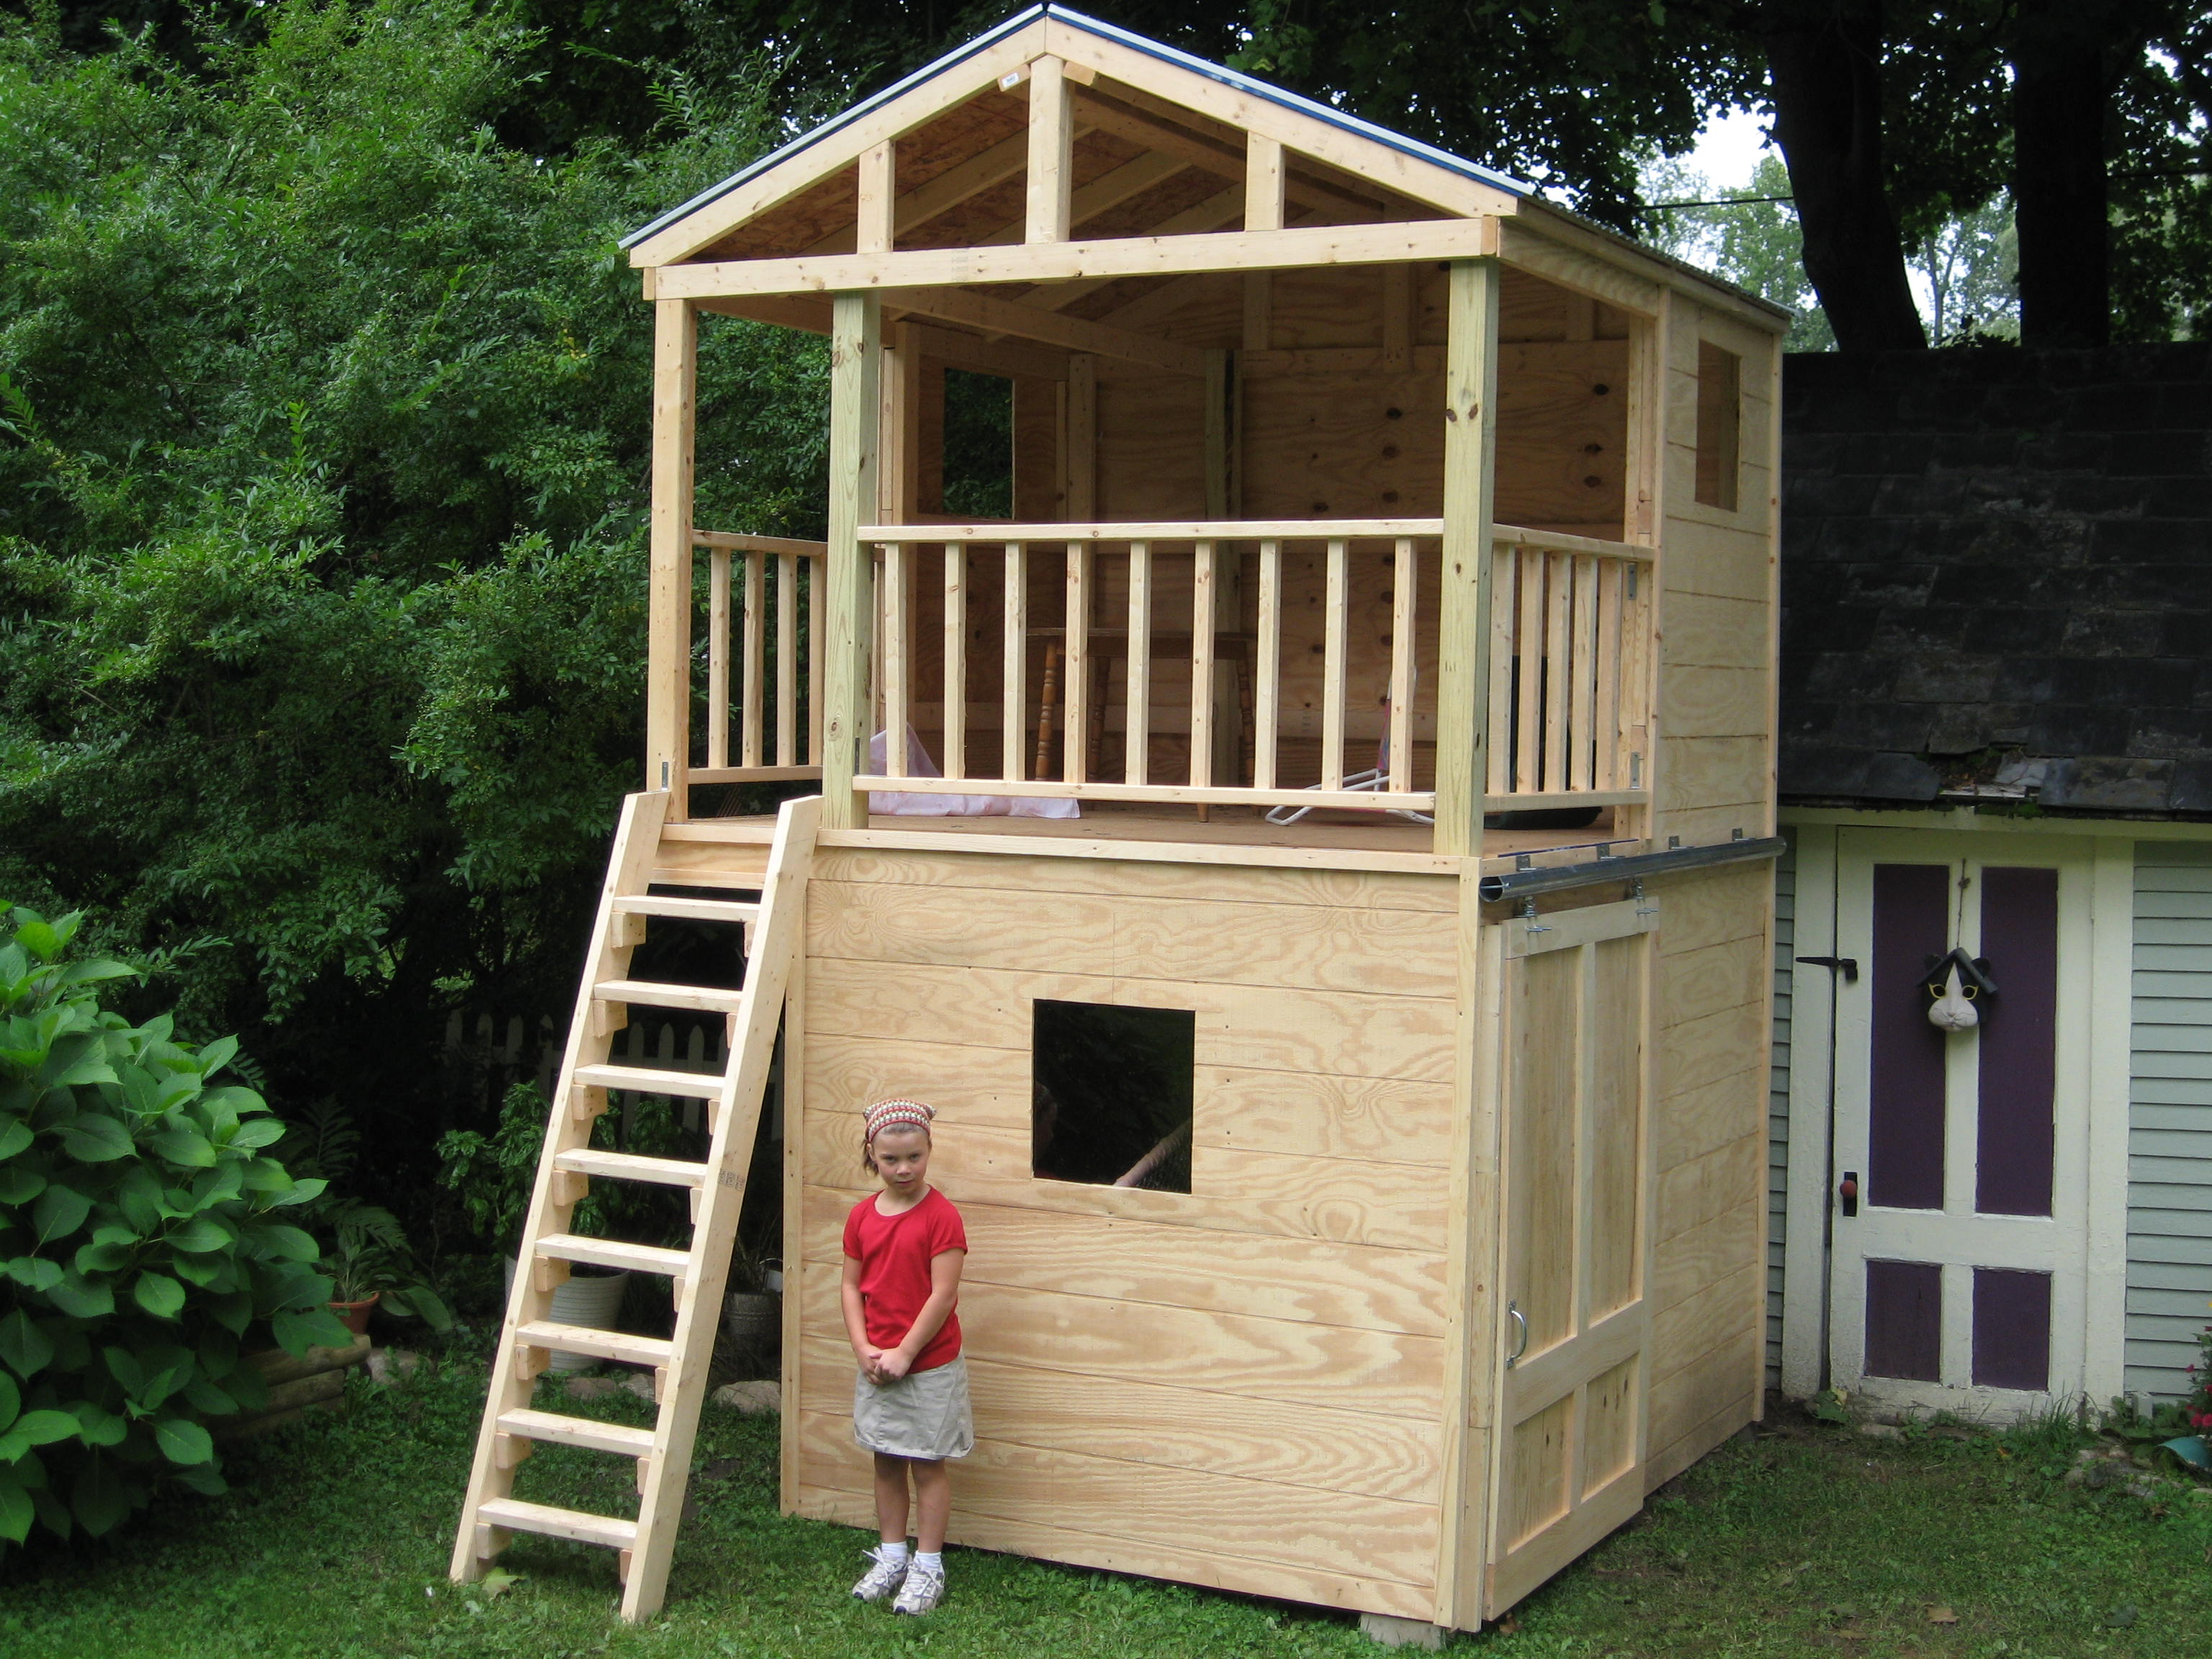 awesome playhouse shed combo #6: playhouse storage shed. Combination playhouse storage shed